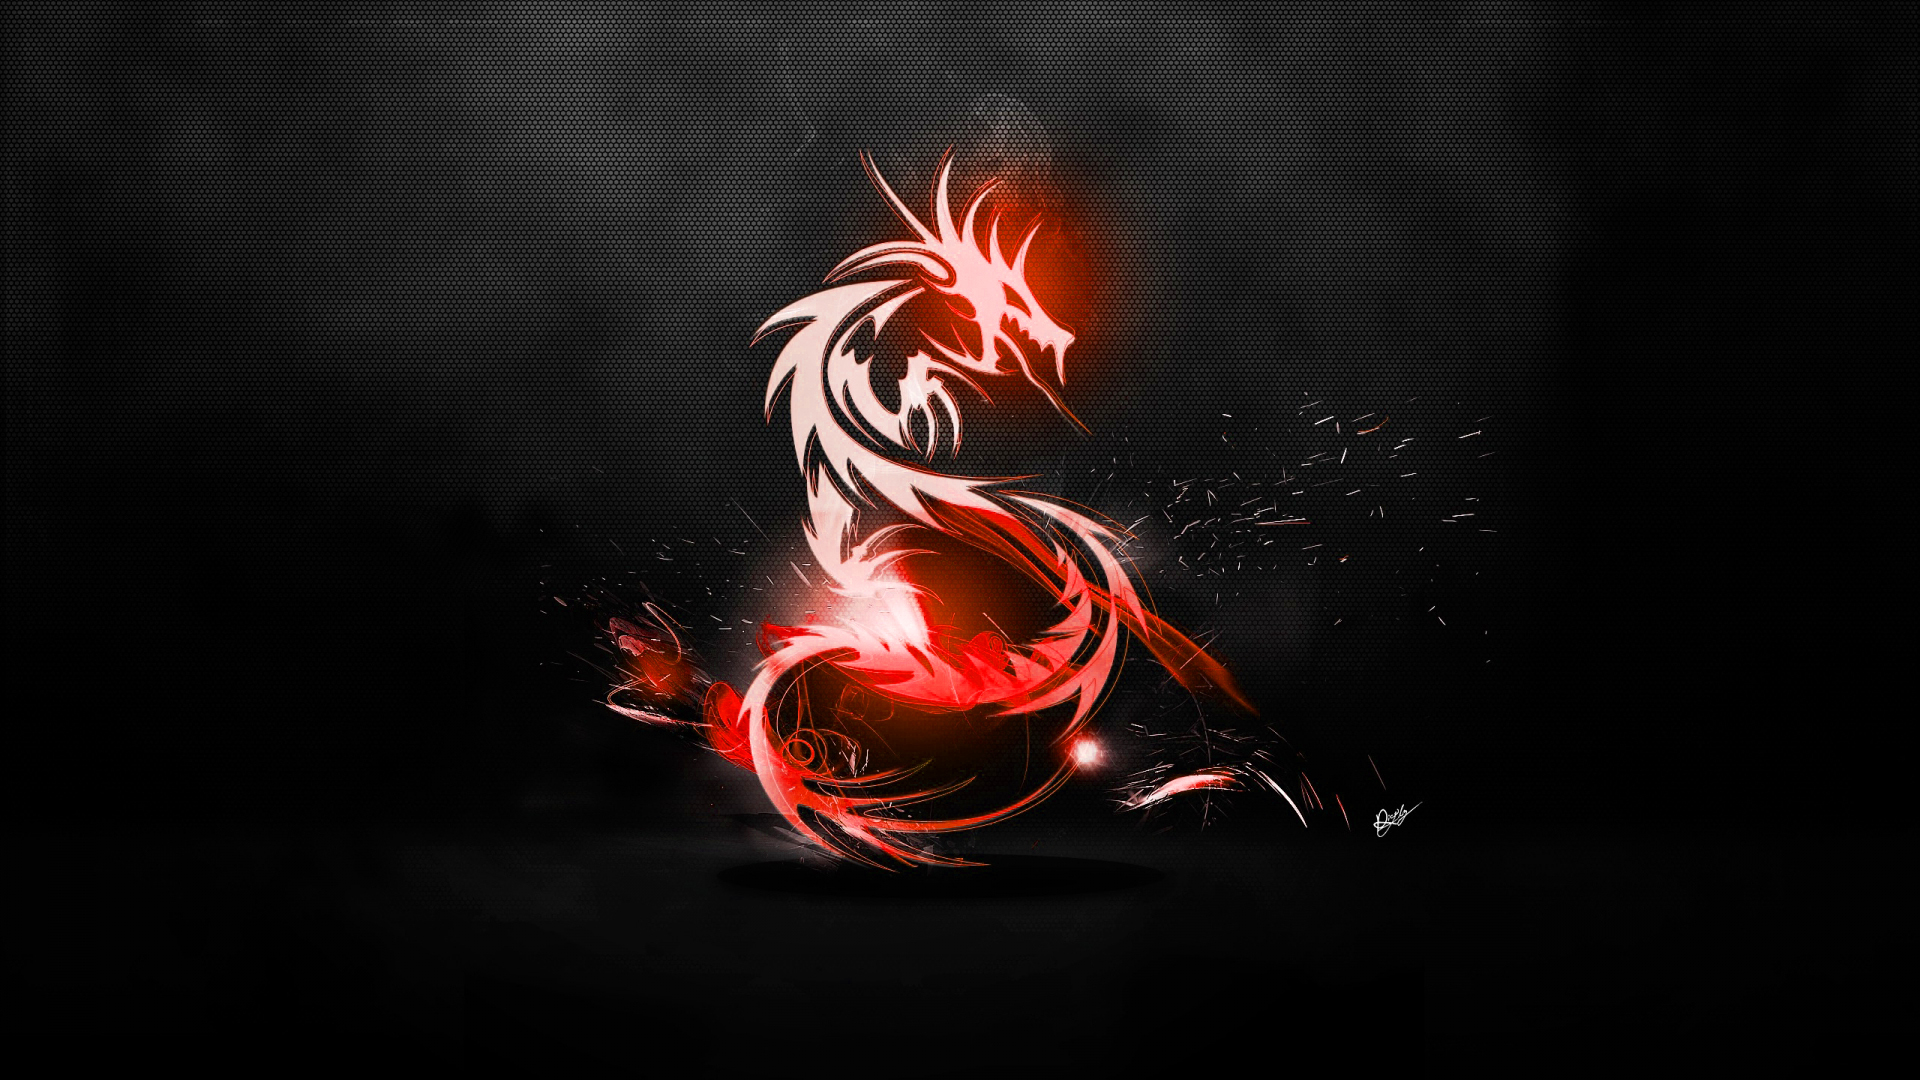 Abstract Dragon Wallpaper Red Carbon Fibre Black By Maciekporebski ...